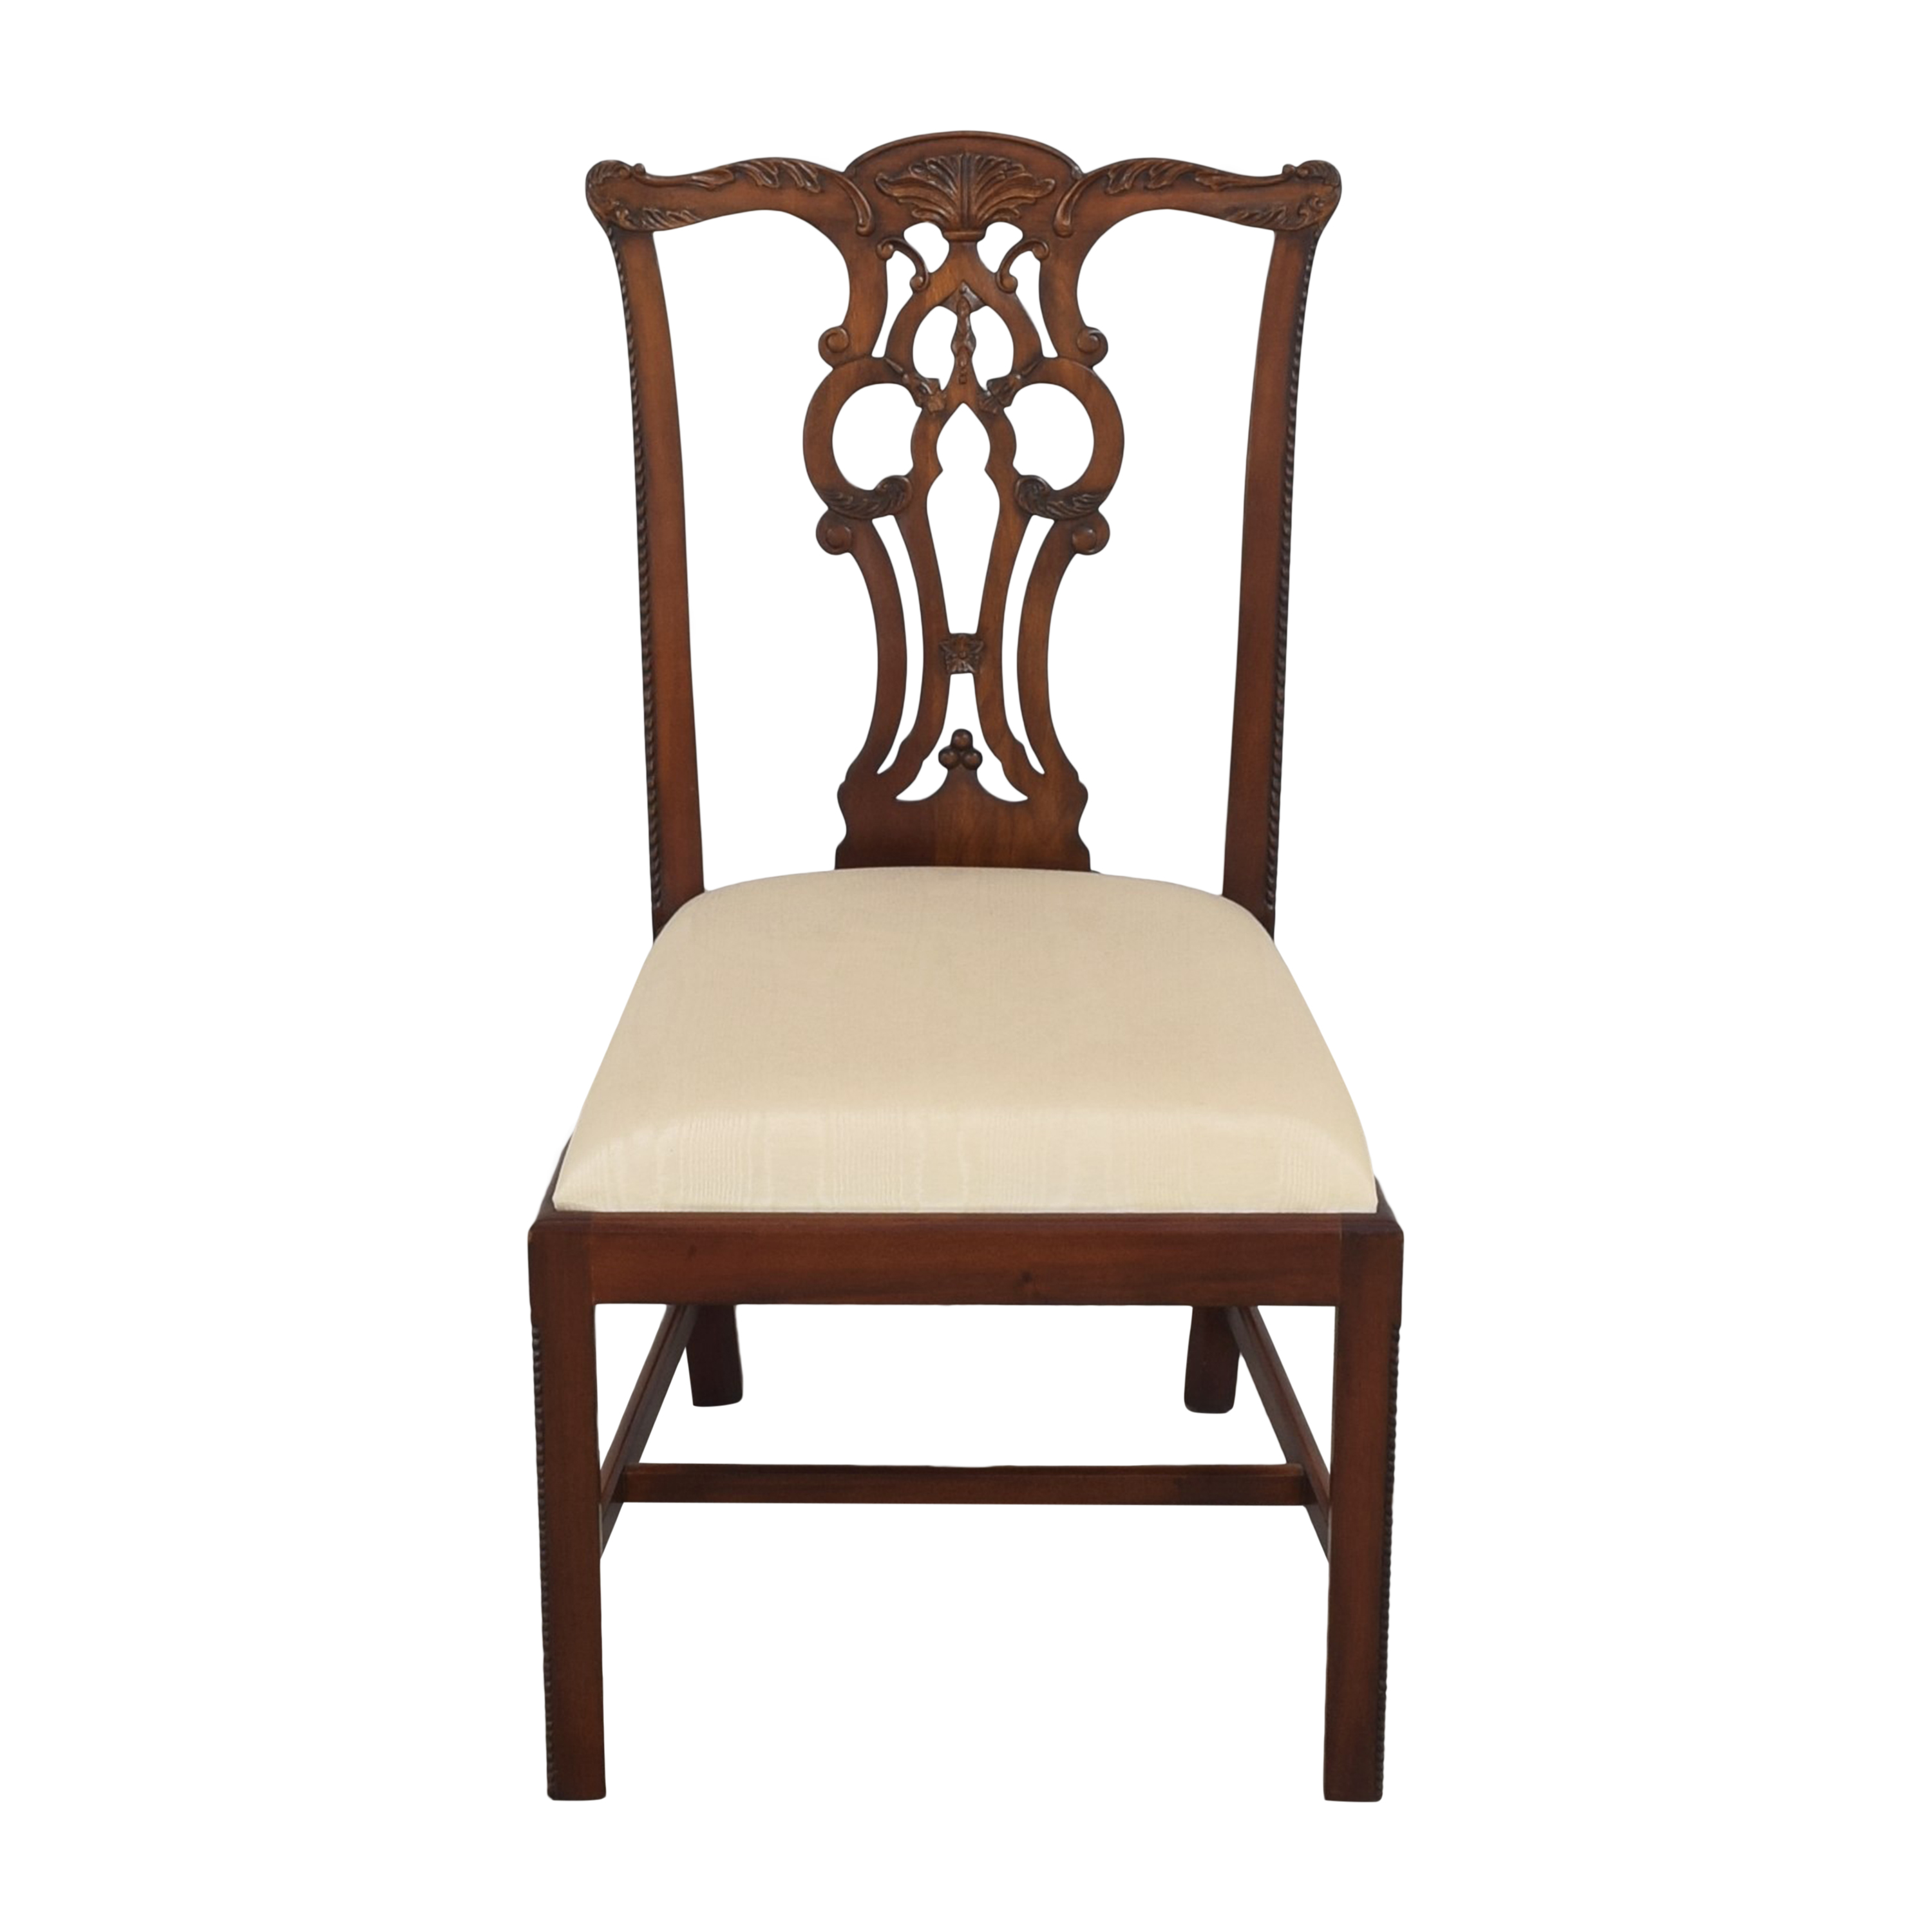 Maitland-Smith Maitland-Smith Chippendale Dining Side Chair nj